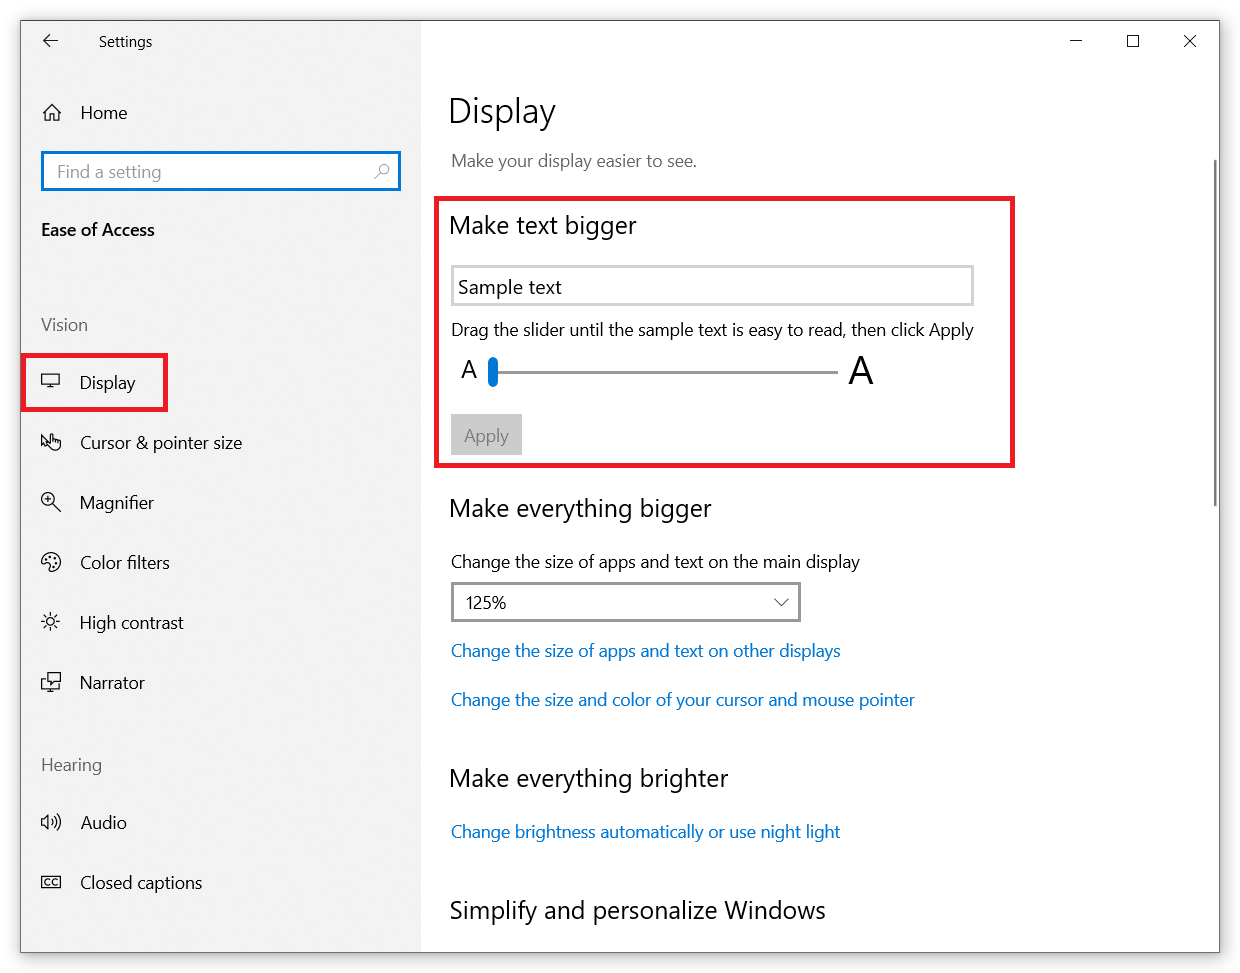 How to Change Font Size in Windows 10?